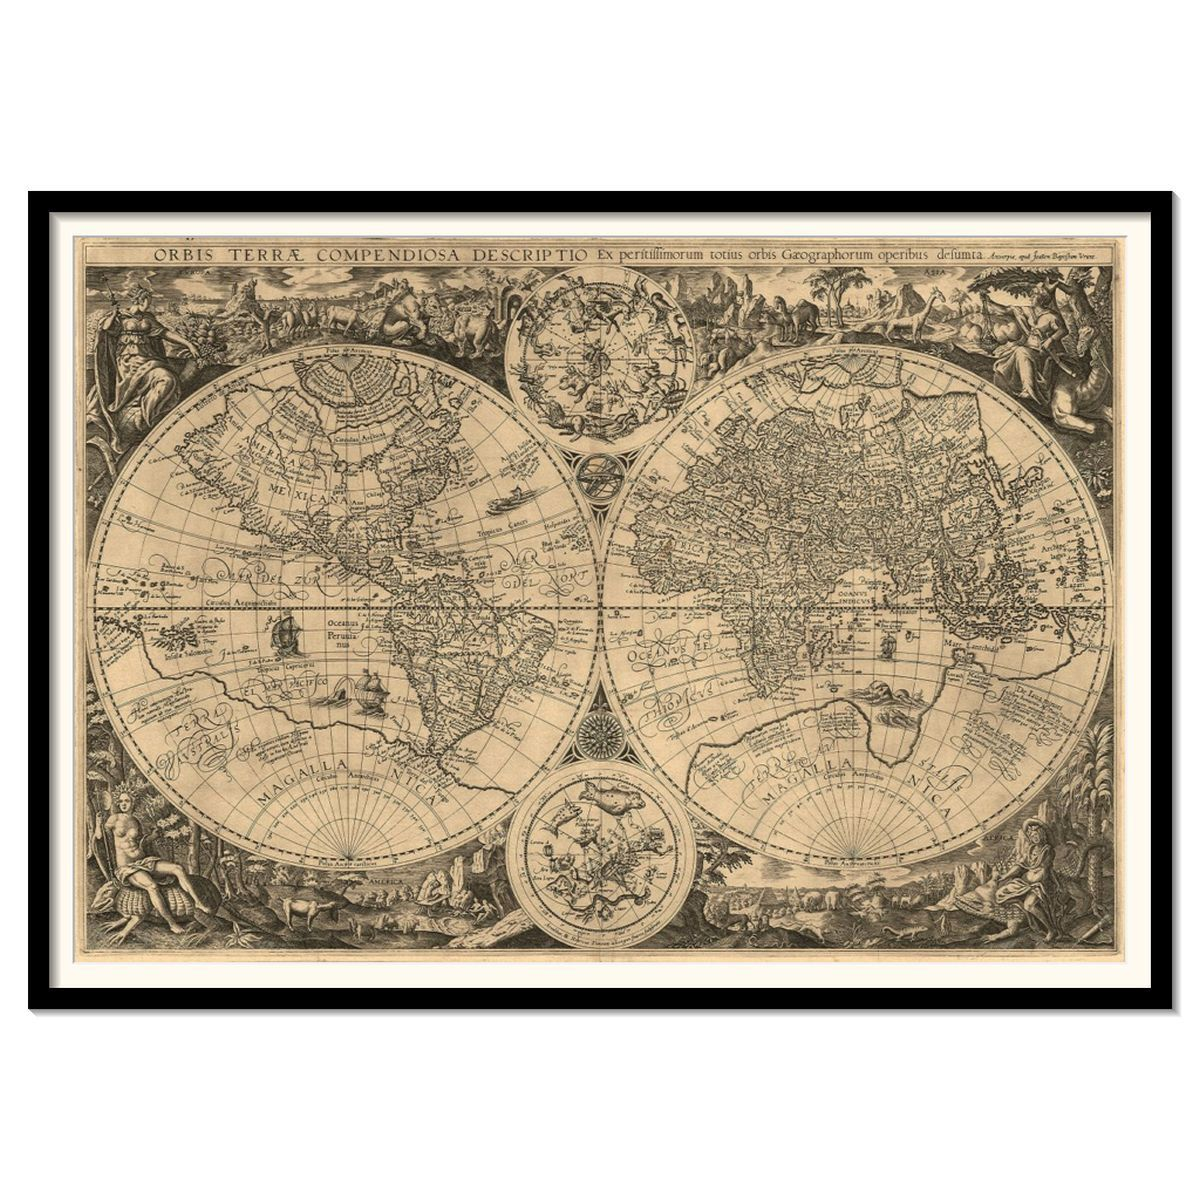 Vintage world map by joanem baptistam vrient large archival print vintage world map by joanem baptistam vrient large archival print 24 x 35 sciox Gallery